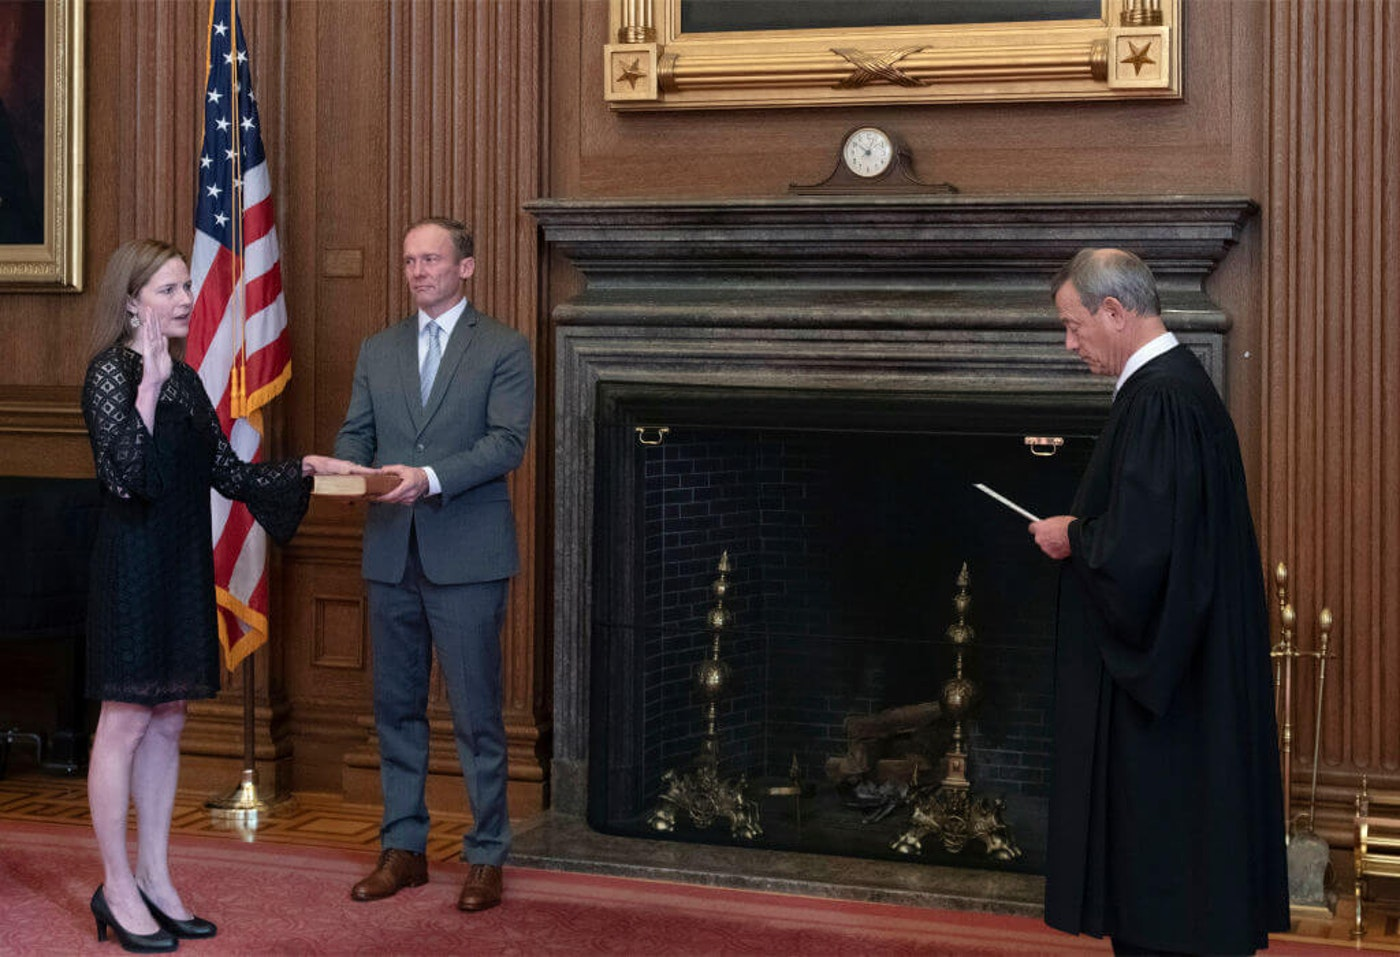 Chief Justice John G. Roberts (R) administers the Judicial Oath to U.S. Supreme Court Associate Justice Amy Coney Barrett as her husband Jesse Barrett holds the Bible in the East Conference Room, Supreme Court Building on October 27, 2020 in Washington, DC. (Photo by Fred Schilling/Collection of the Supreme Court of the United States via Getty Images)